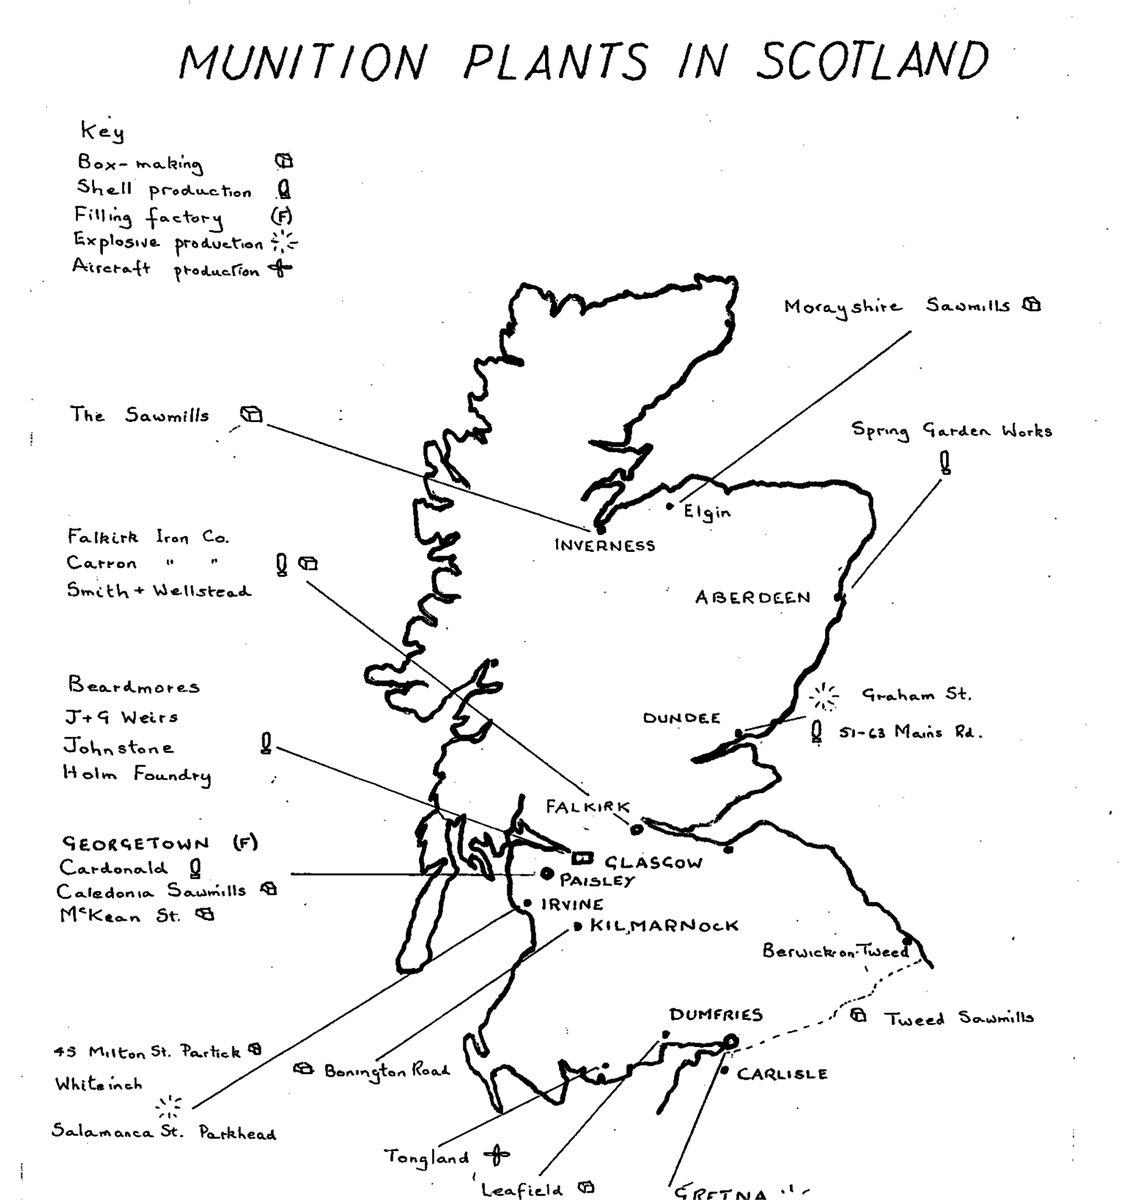 Map of munitions factories from across Scotland shared with @Devils_Porridge #vsws #ScotlandIsNow #SeeSouthScotland @I_W_M #WWI @FwwNetwork